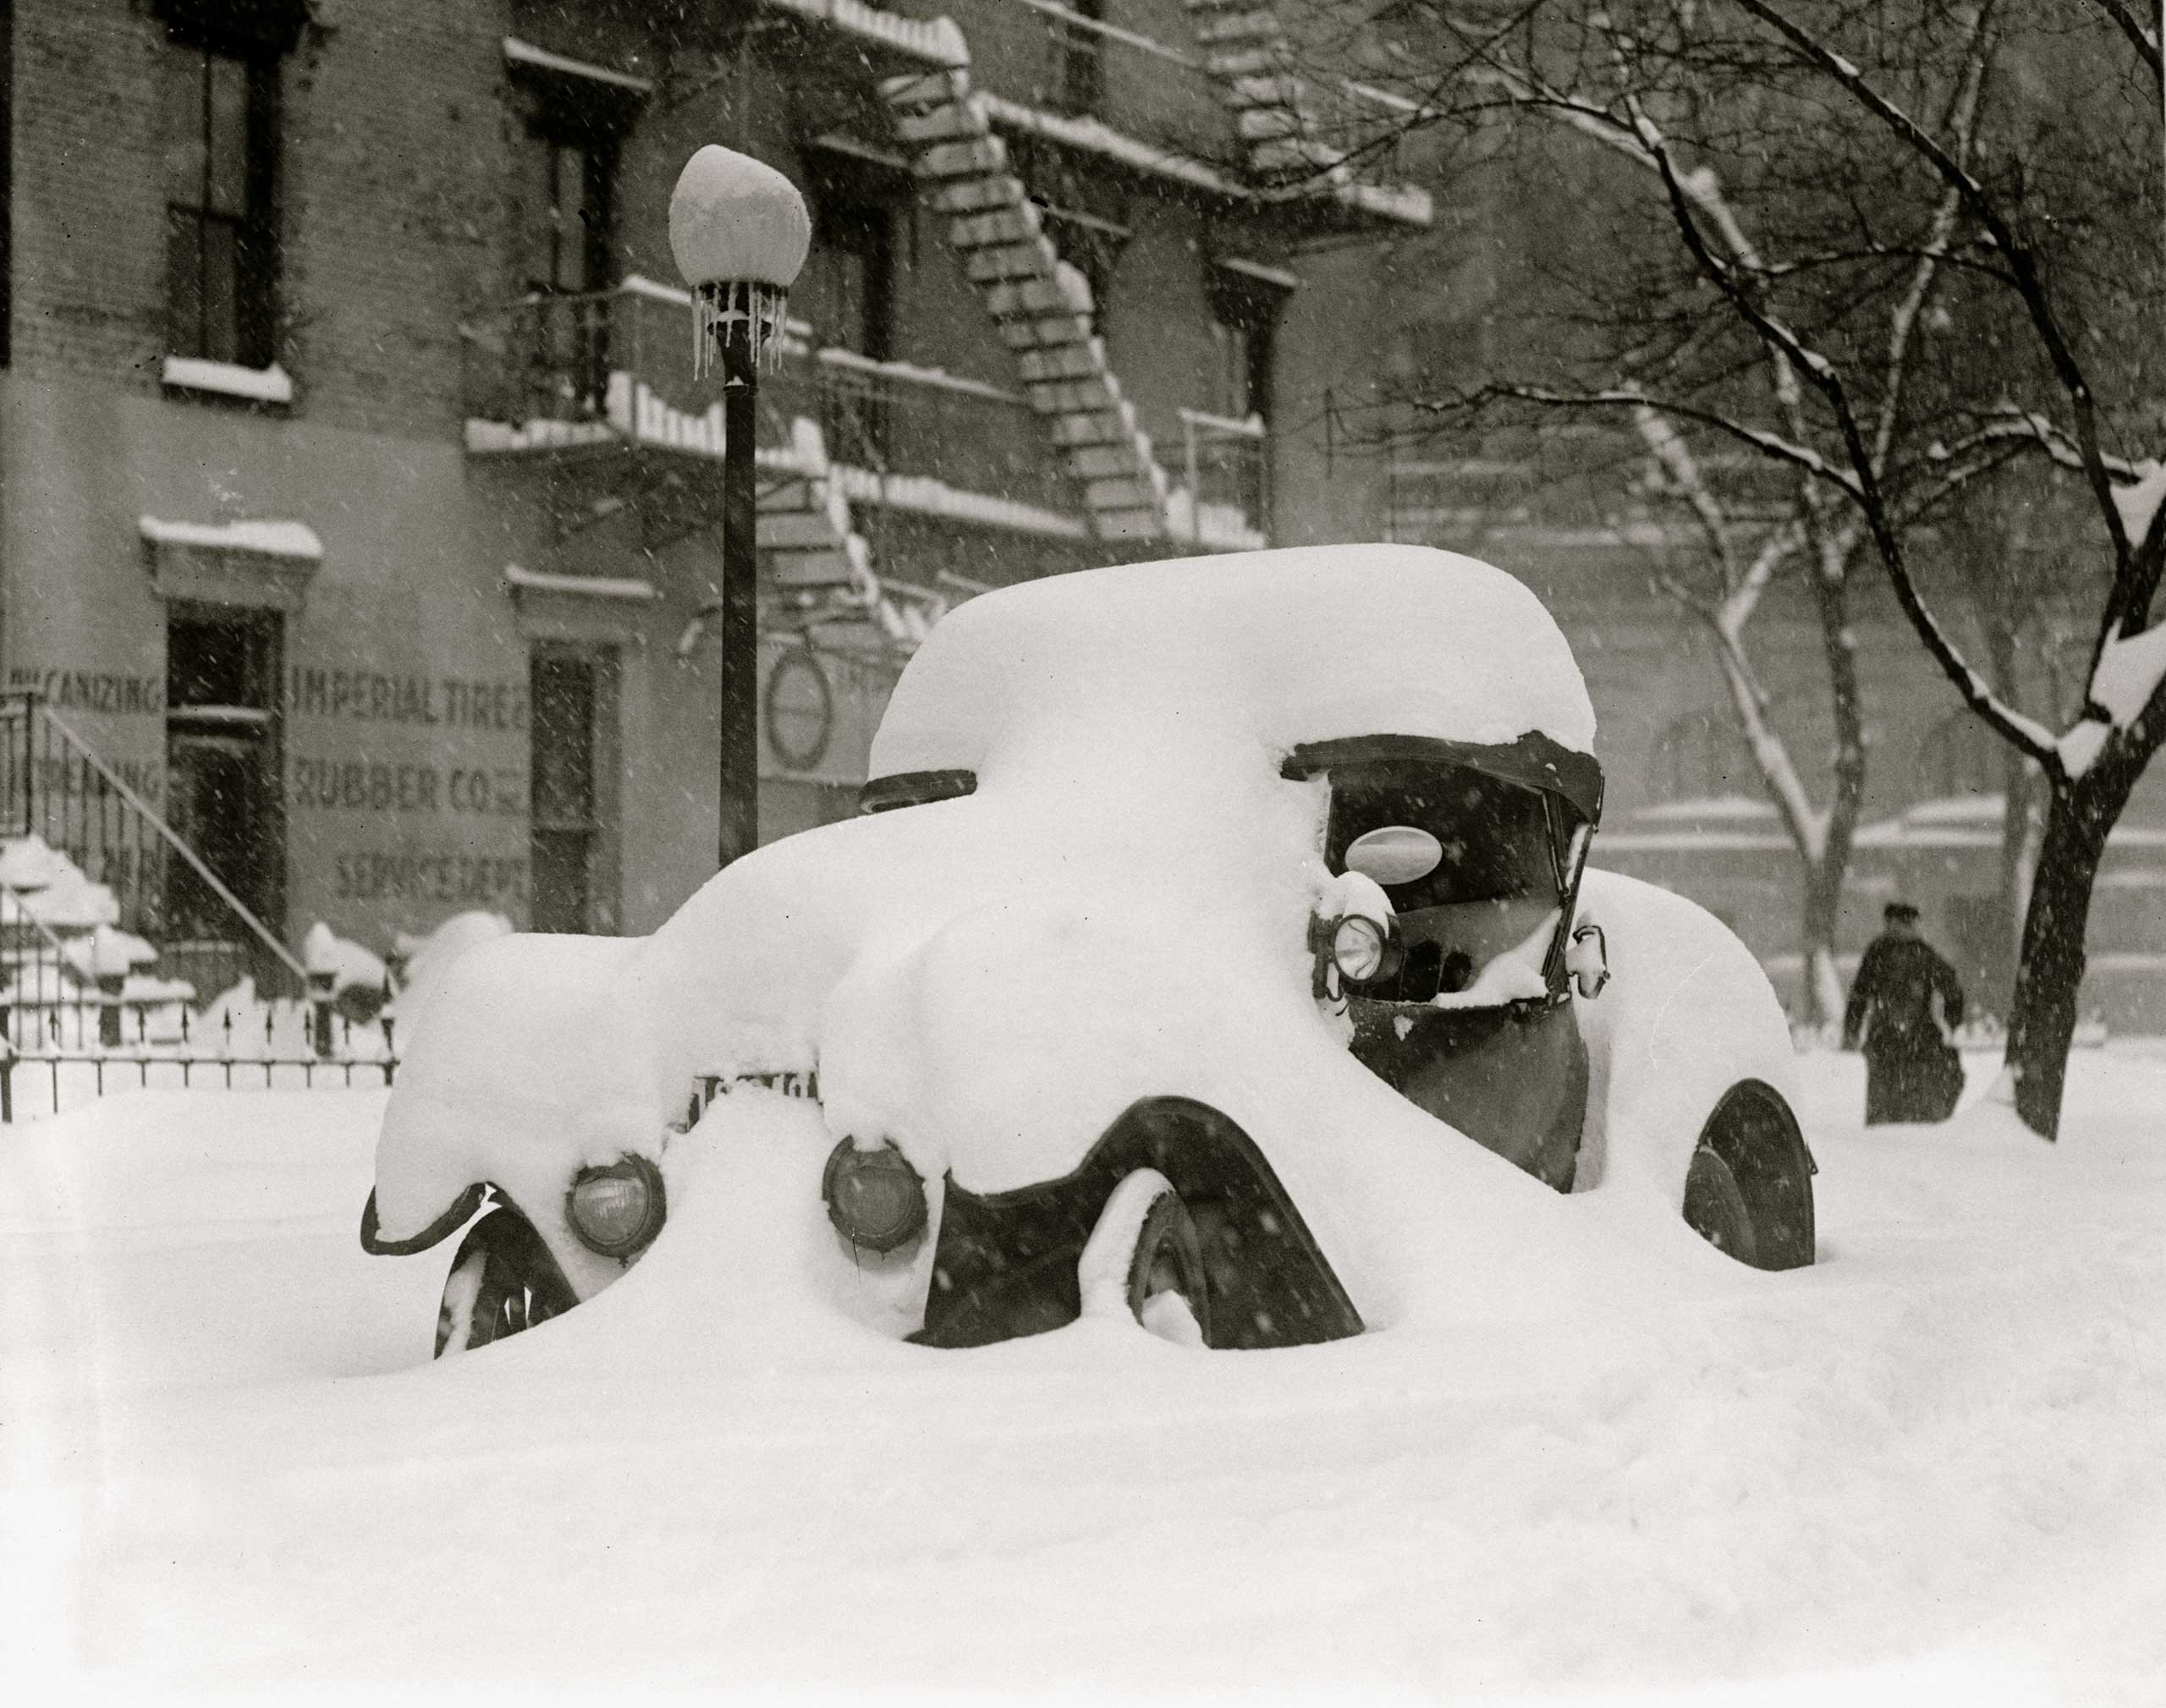 <b>The Knickerbocker Storm (Jan. 27-28, 1922)</b> This snowstorm lasted for two days and a accumulated a regional record of 28-inches of snow. And it got its name after the famous Knickerbocker Theater, whose roof collapsed under the weight of the snow, with Washingtonians still inside watching a film. The disaster claimed 98 lives and is still one of Washington's deadliest snow storms.